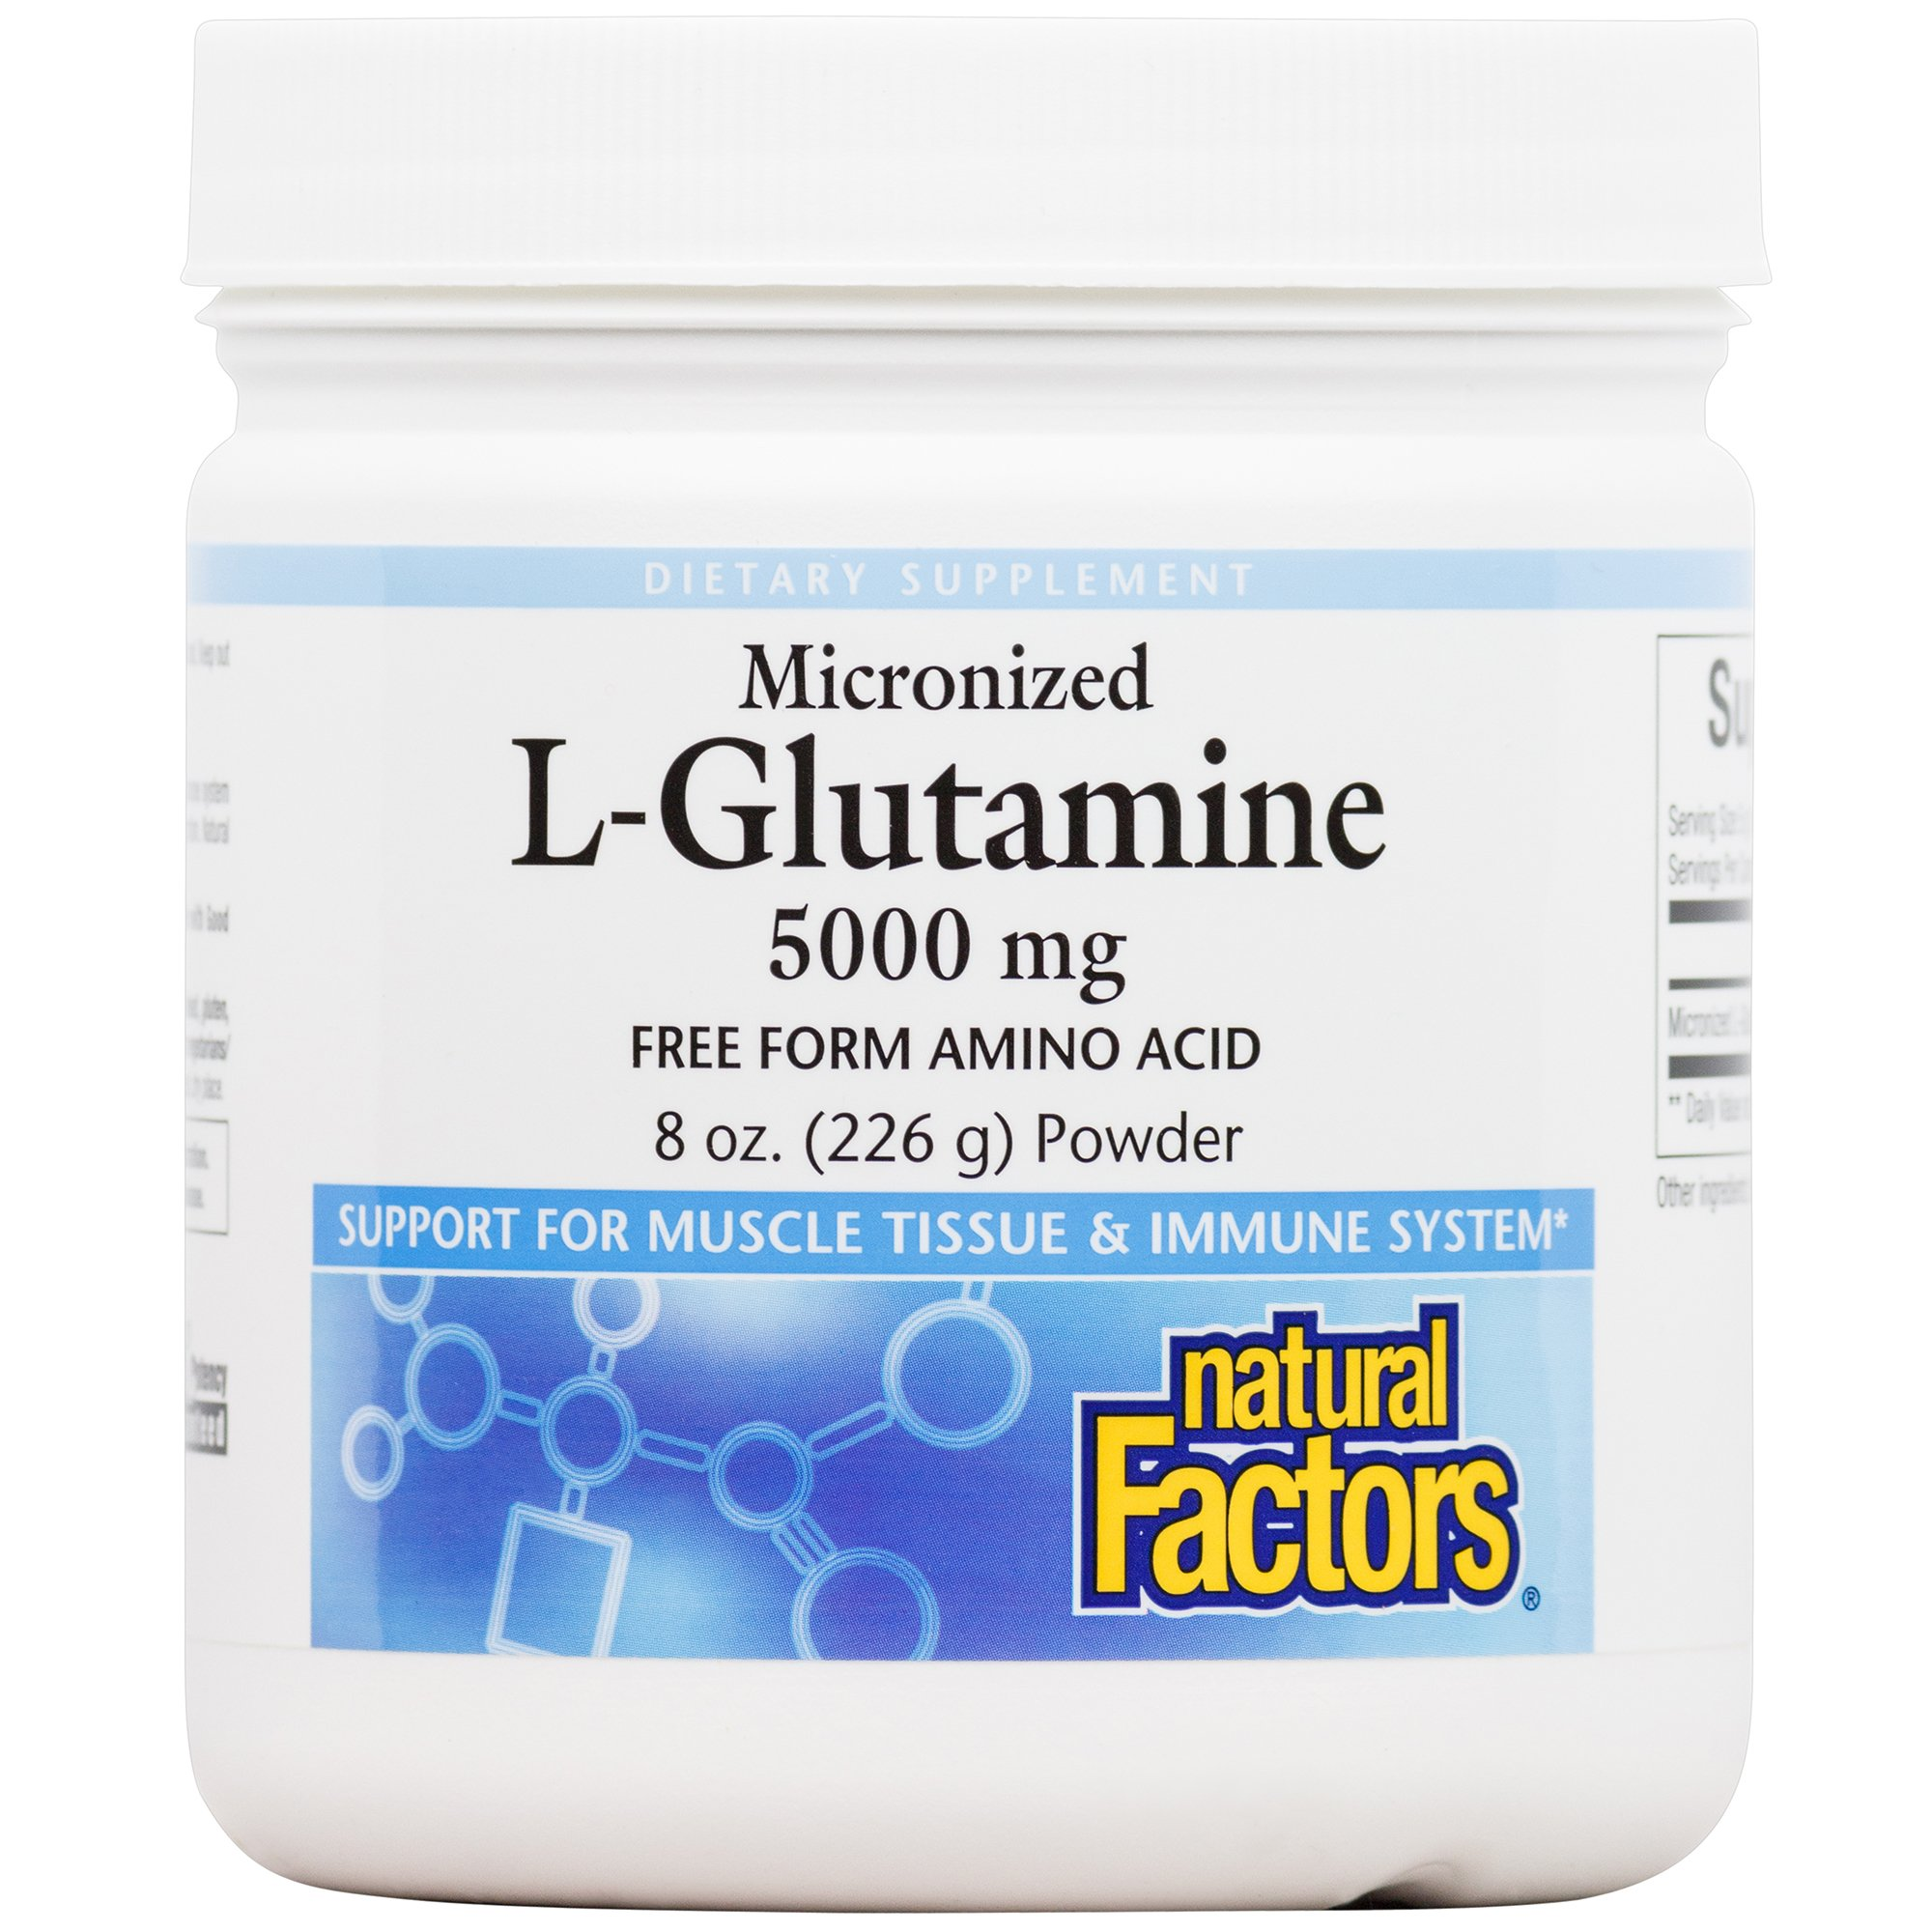 Natural Factors - Micronized L-Glutamine 5000mg, Support for Muscle Tissue & Immune System, 45 Servings (8 oz)